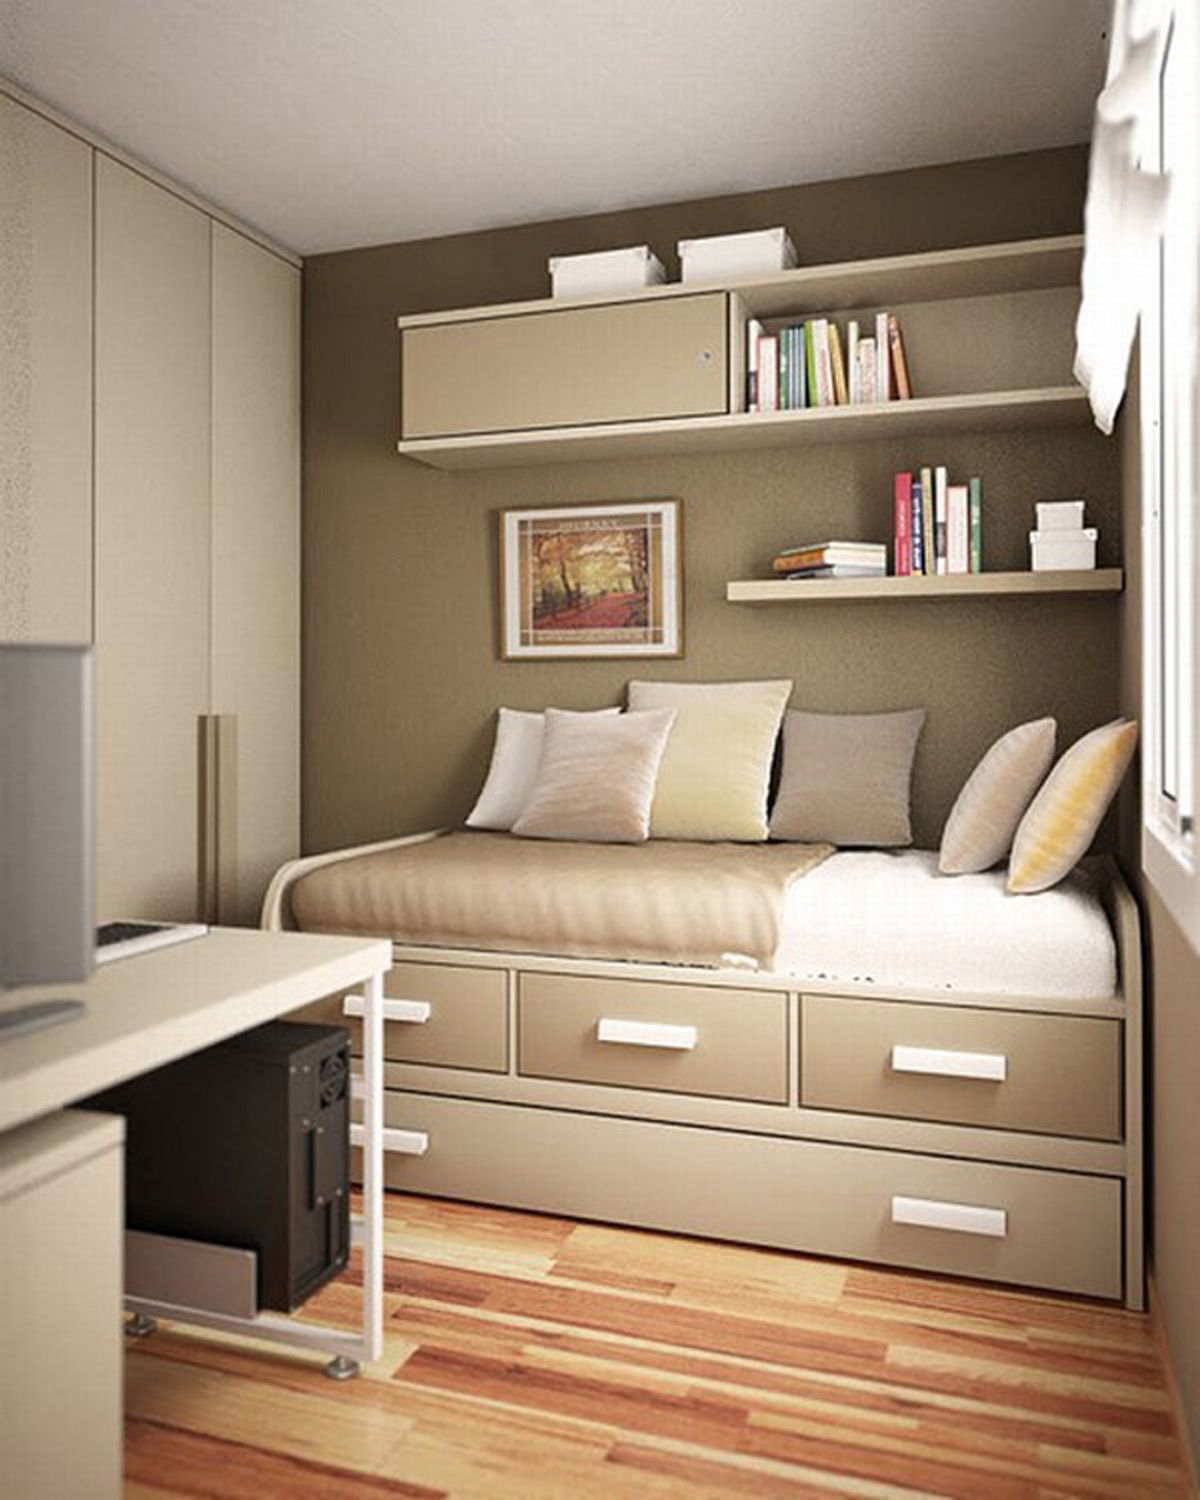 Good Ideas For Small Rooms contemporary small bedroom ideas | bedrooms, storage design and